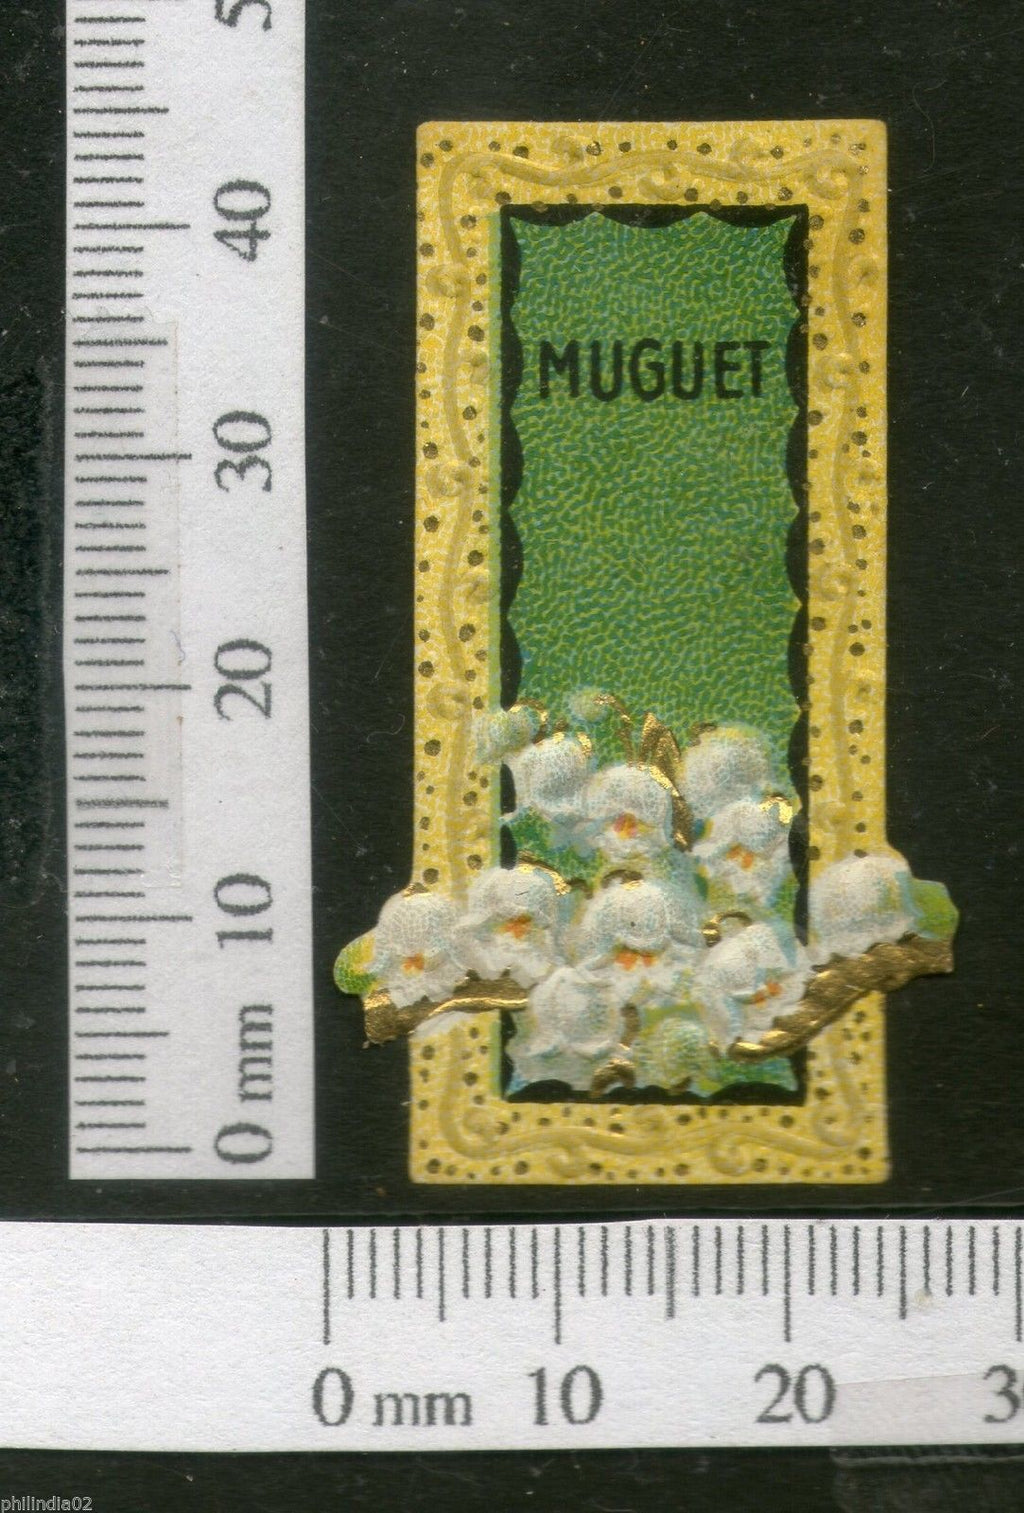 India 1950's Muguet Flowers French Print Vintage Perfume Label Multi-Colour # 105 - Phil India Stamps